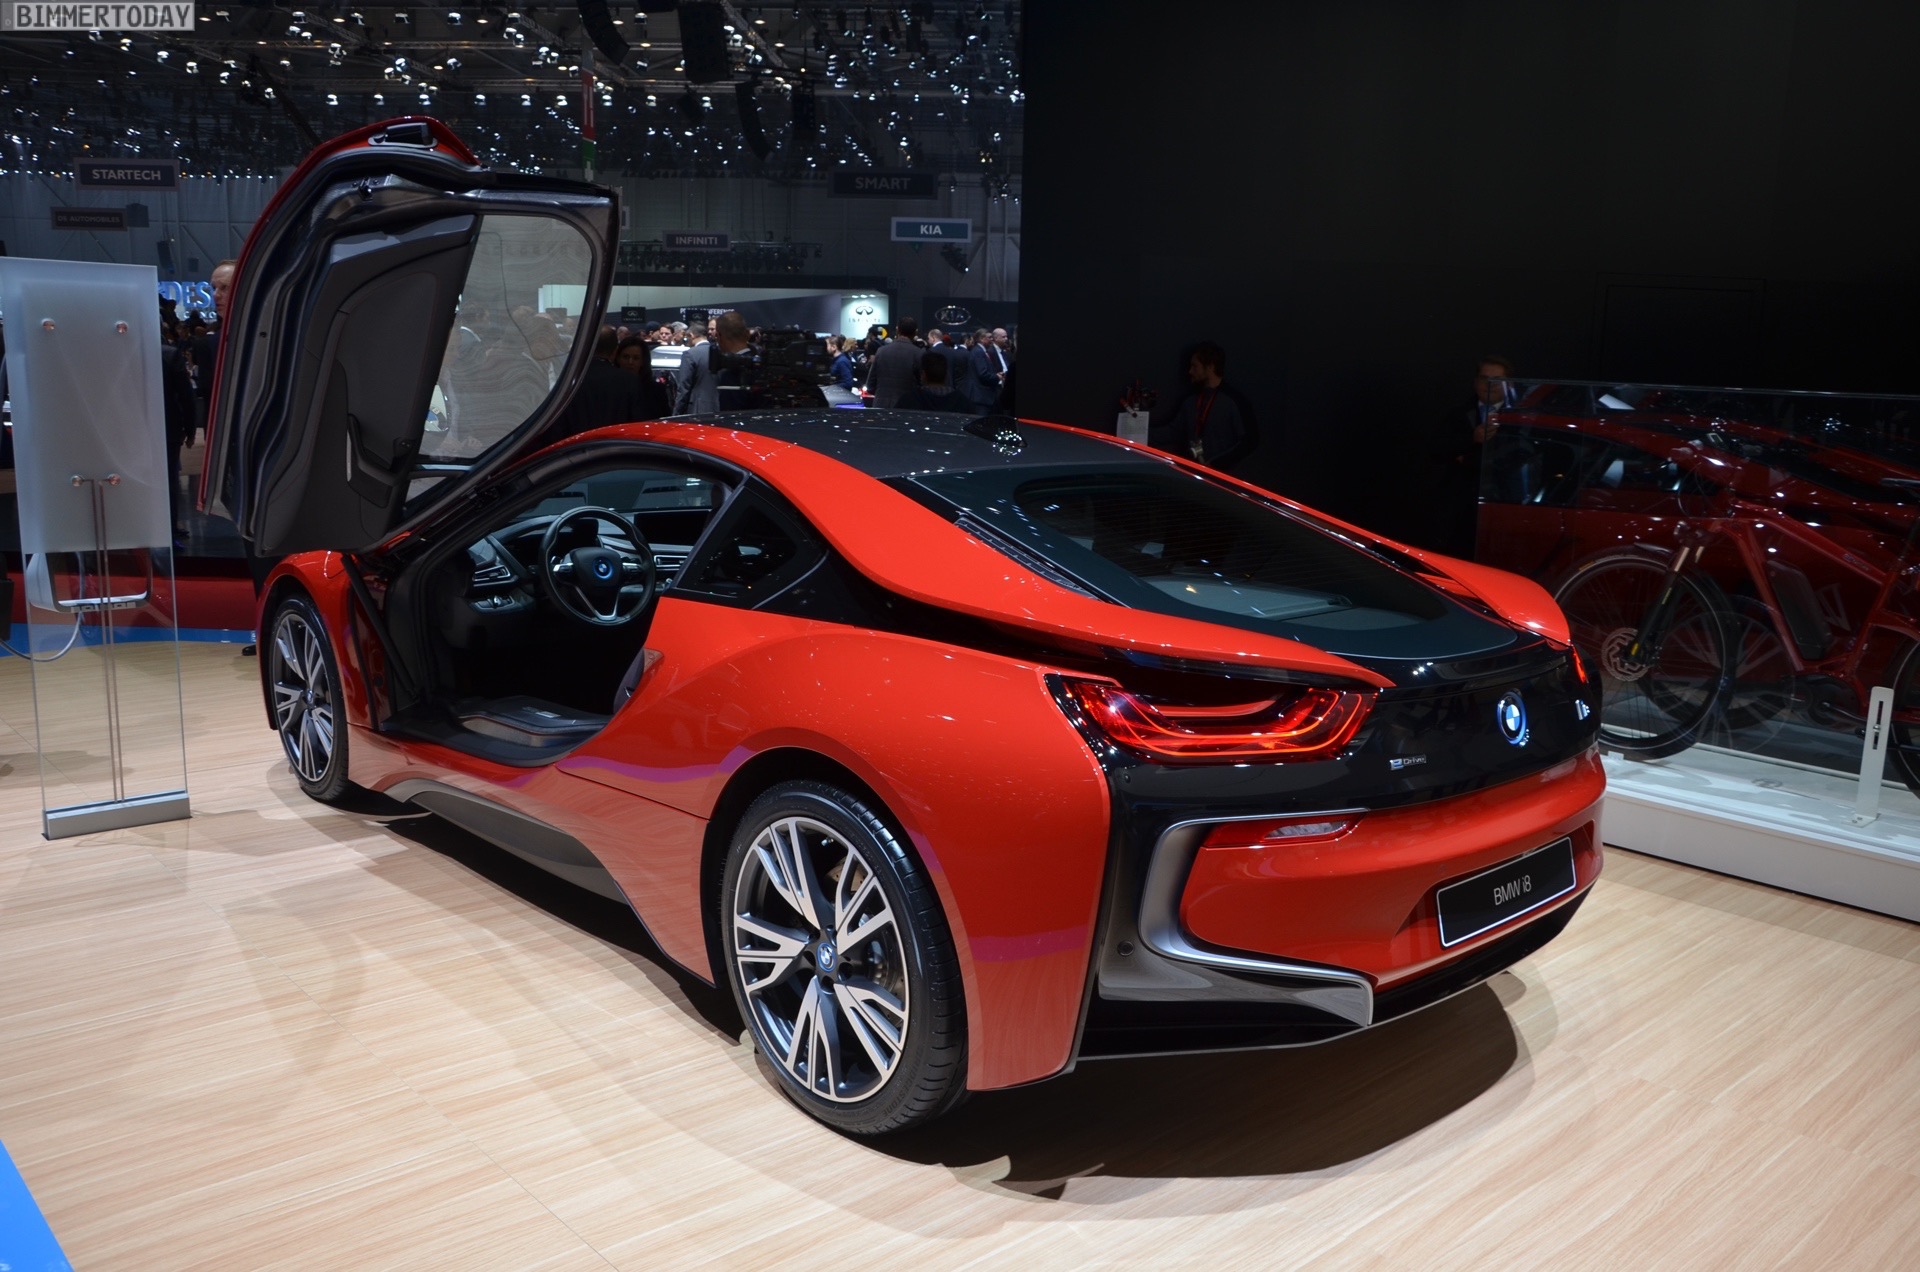 2016 Geneva Motor Show Bmw I8 Protonic Red Edition Makes